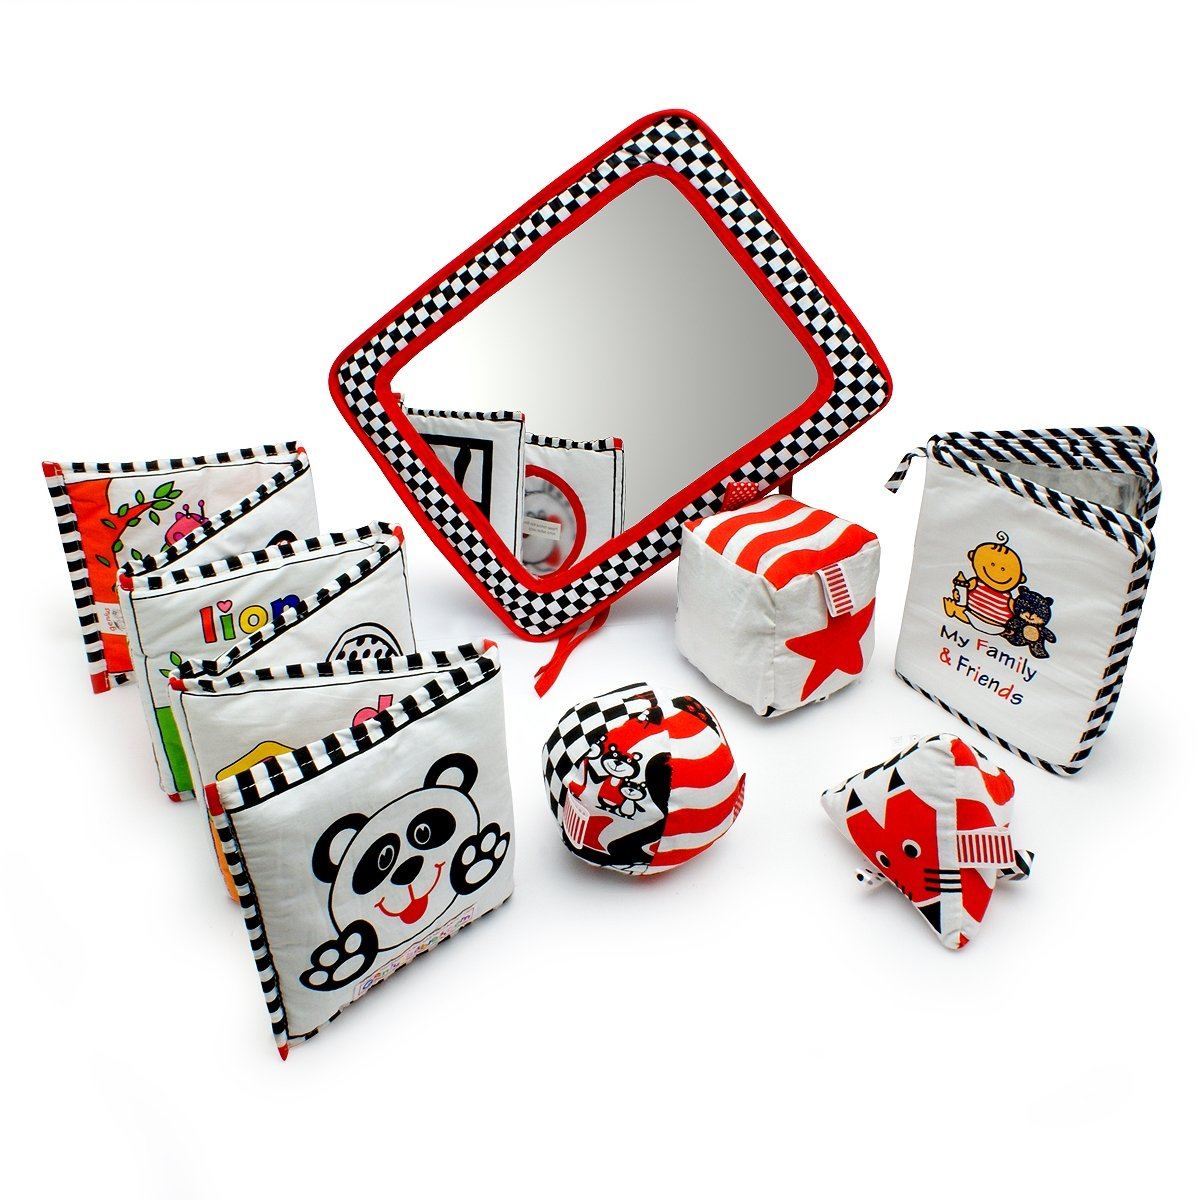 Infant Development Toys Gift Bundle - Black, White & Red.